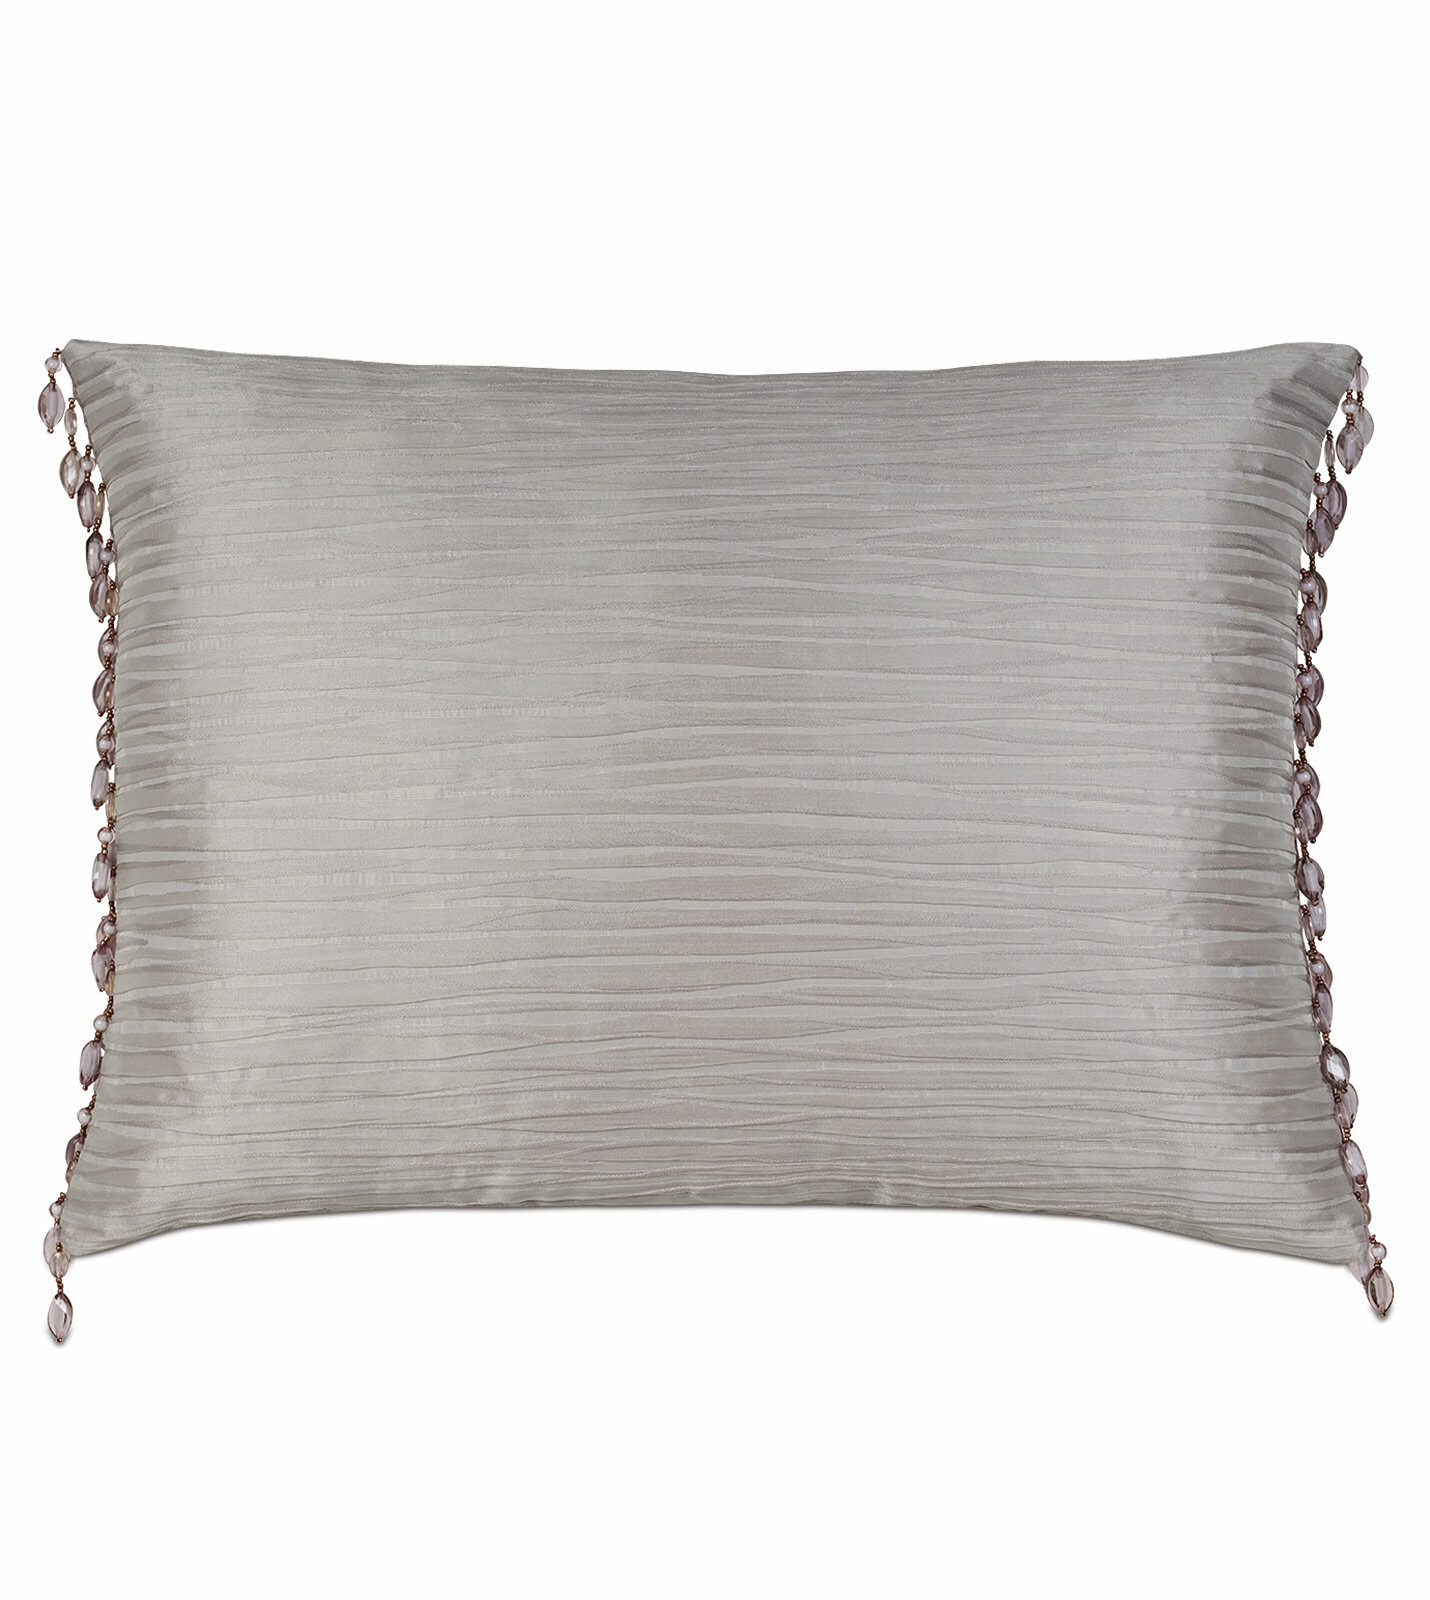 Eastern Accents Geode Luxe Lumbar Pillow Perigold